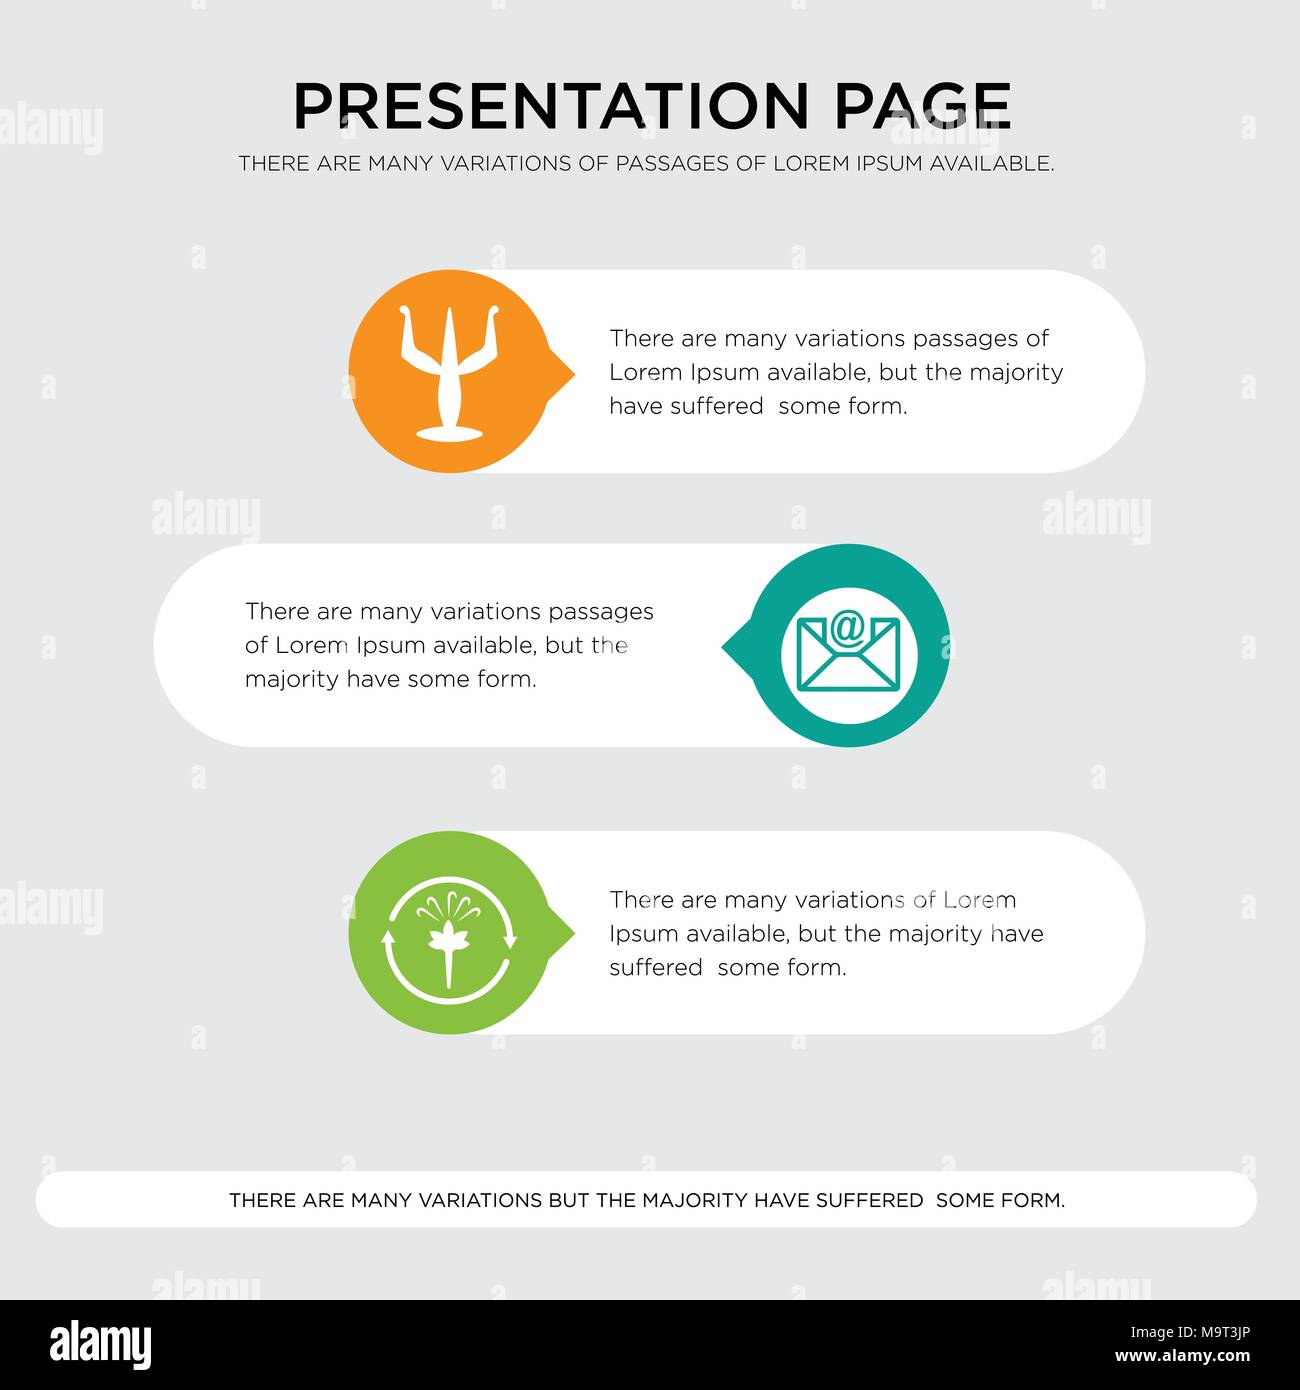 fresh air, email, psi presentation design template in orange, green, yellow colors with horizontal and rounded shapes - Stock Vector